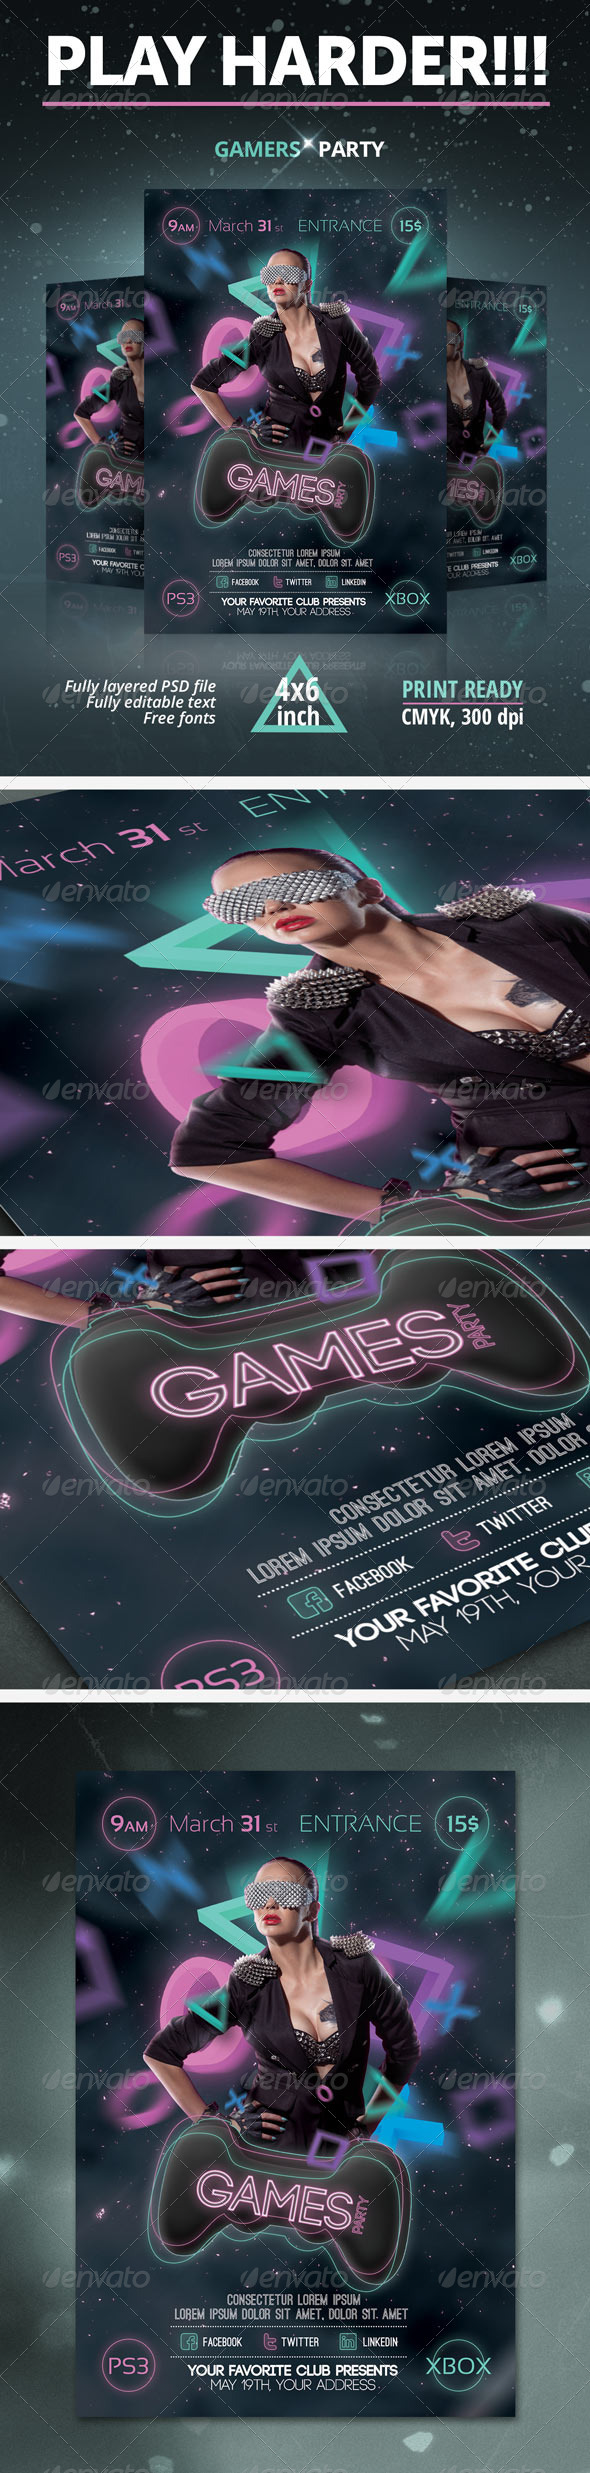 Games Party Flyer - Clubs & Parties Events